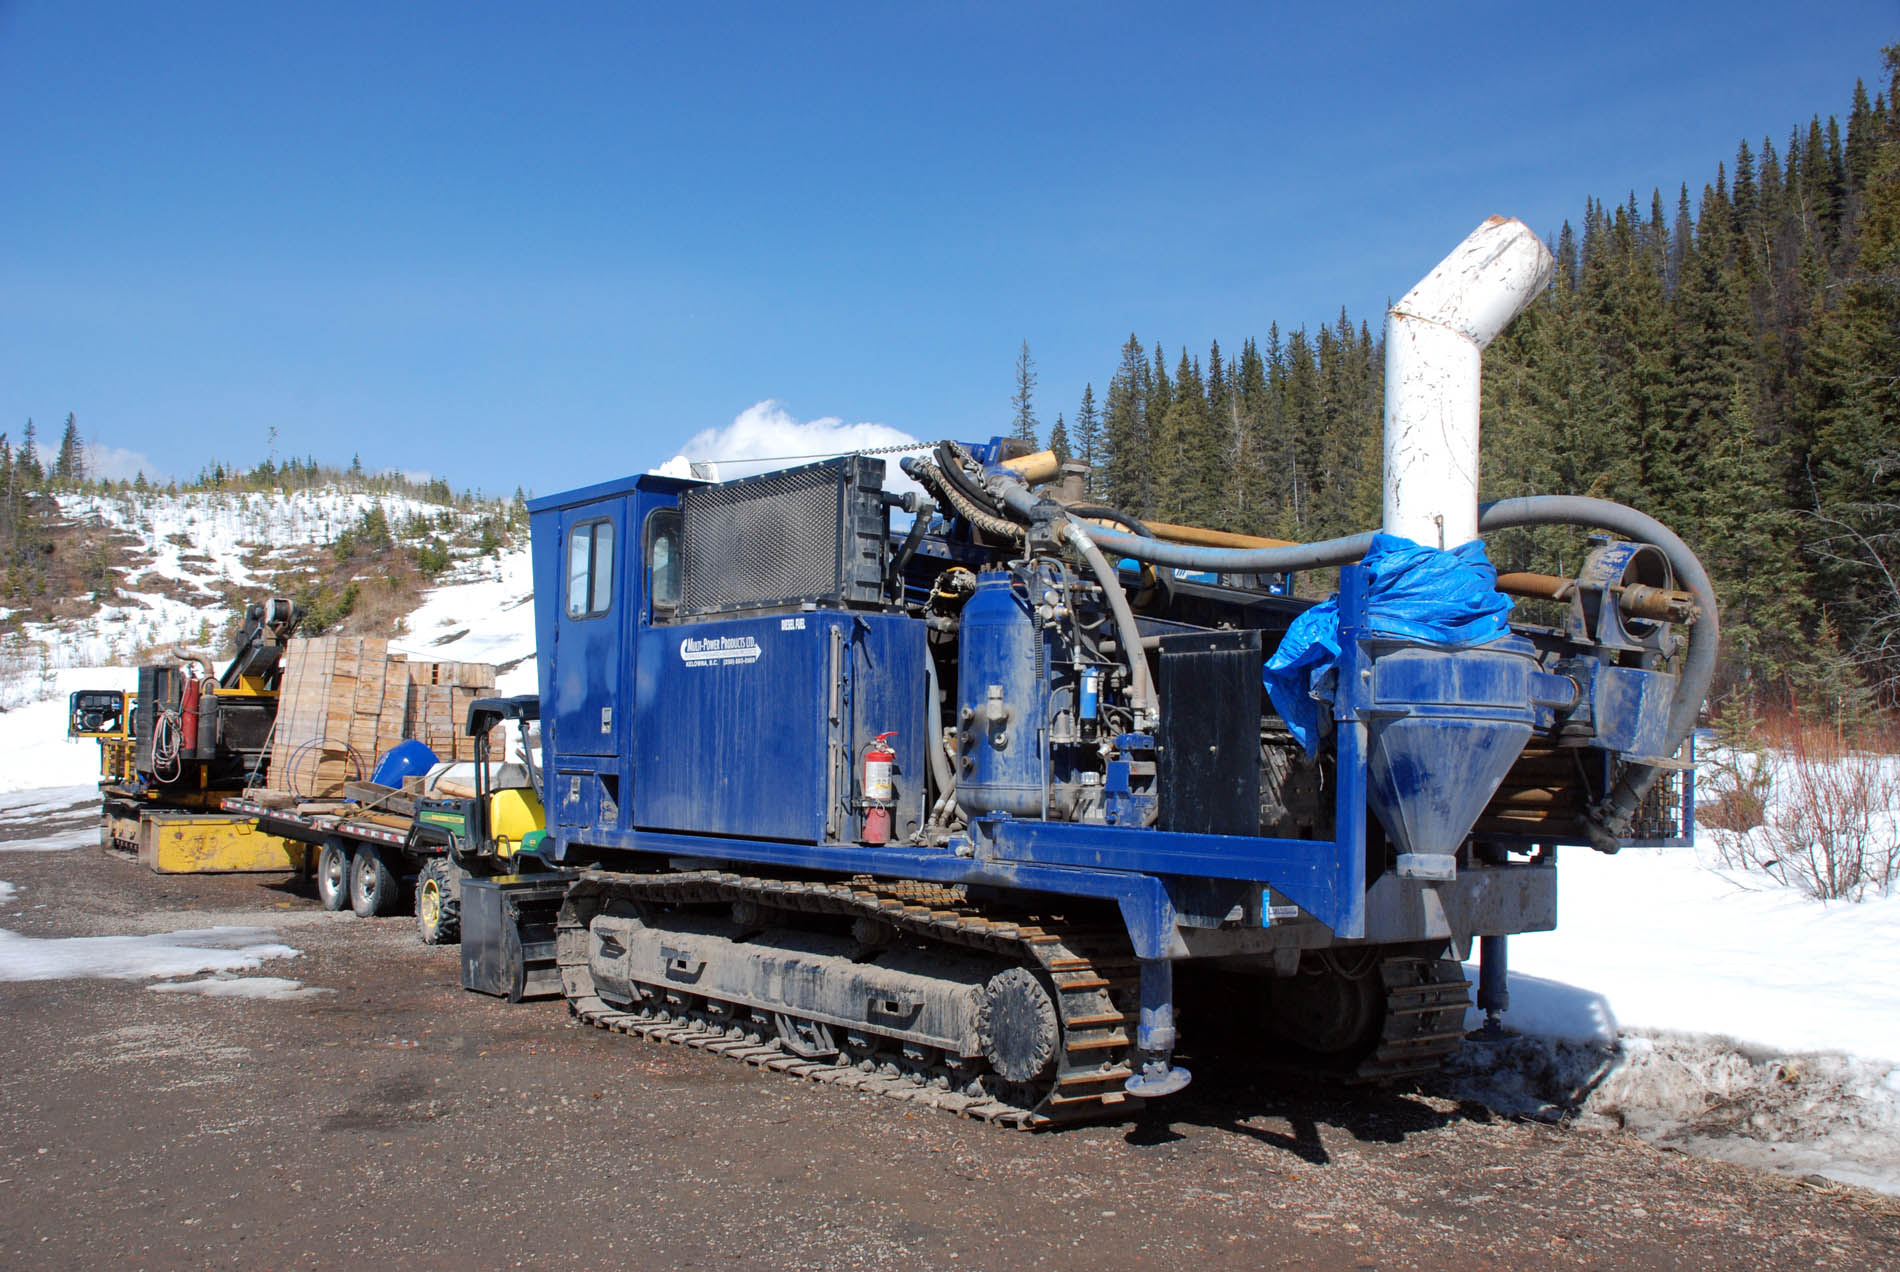 prospector-i-steel-tracked-rc-drilling-rig.jpg